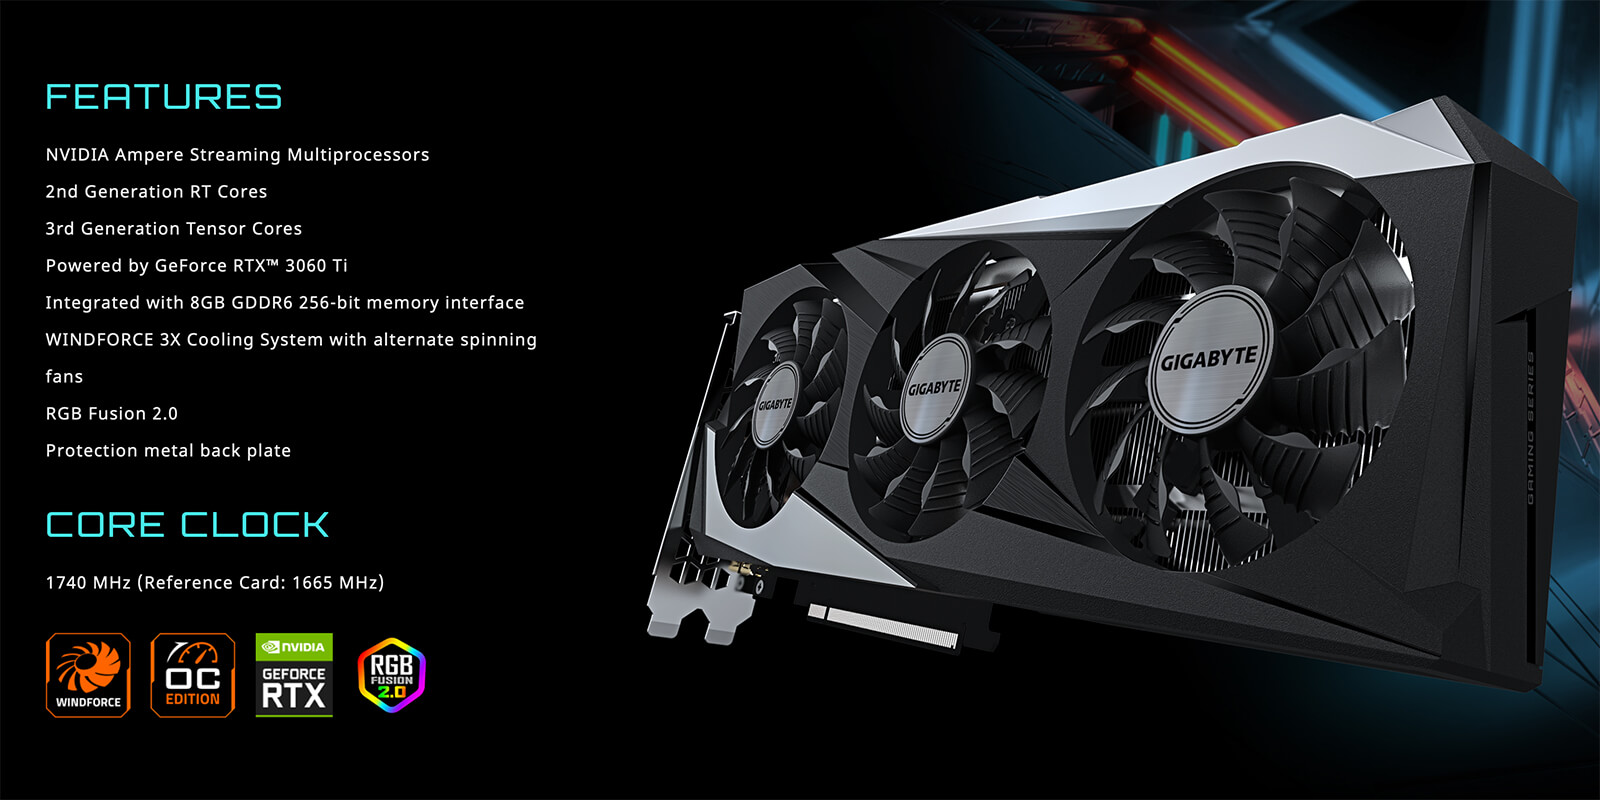 Gigabyte Geforce® Rtx 3060 Ti Gaming Oc 8g Features